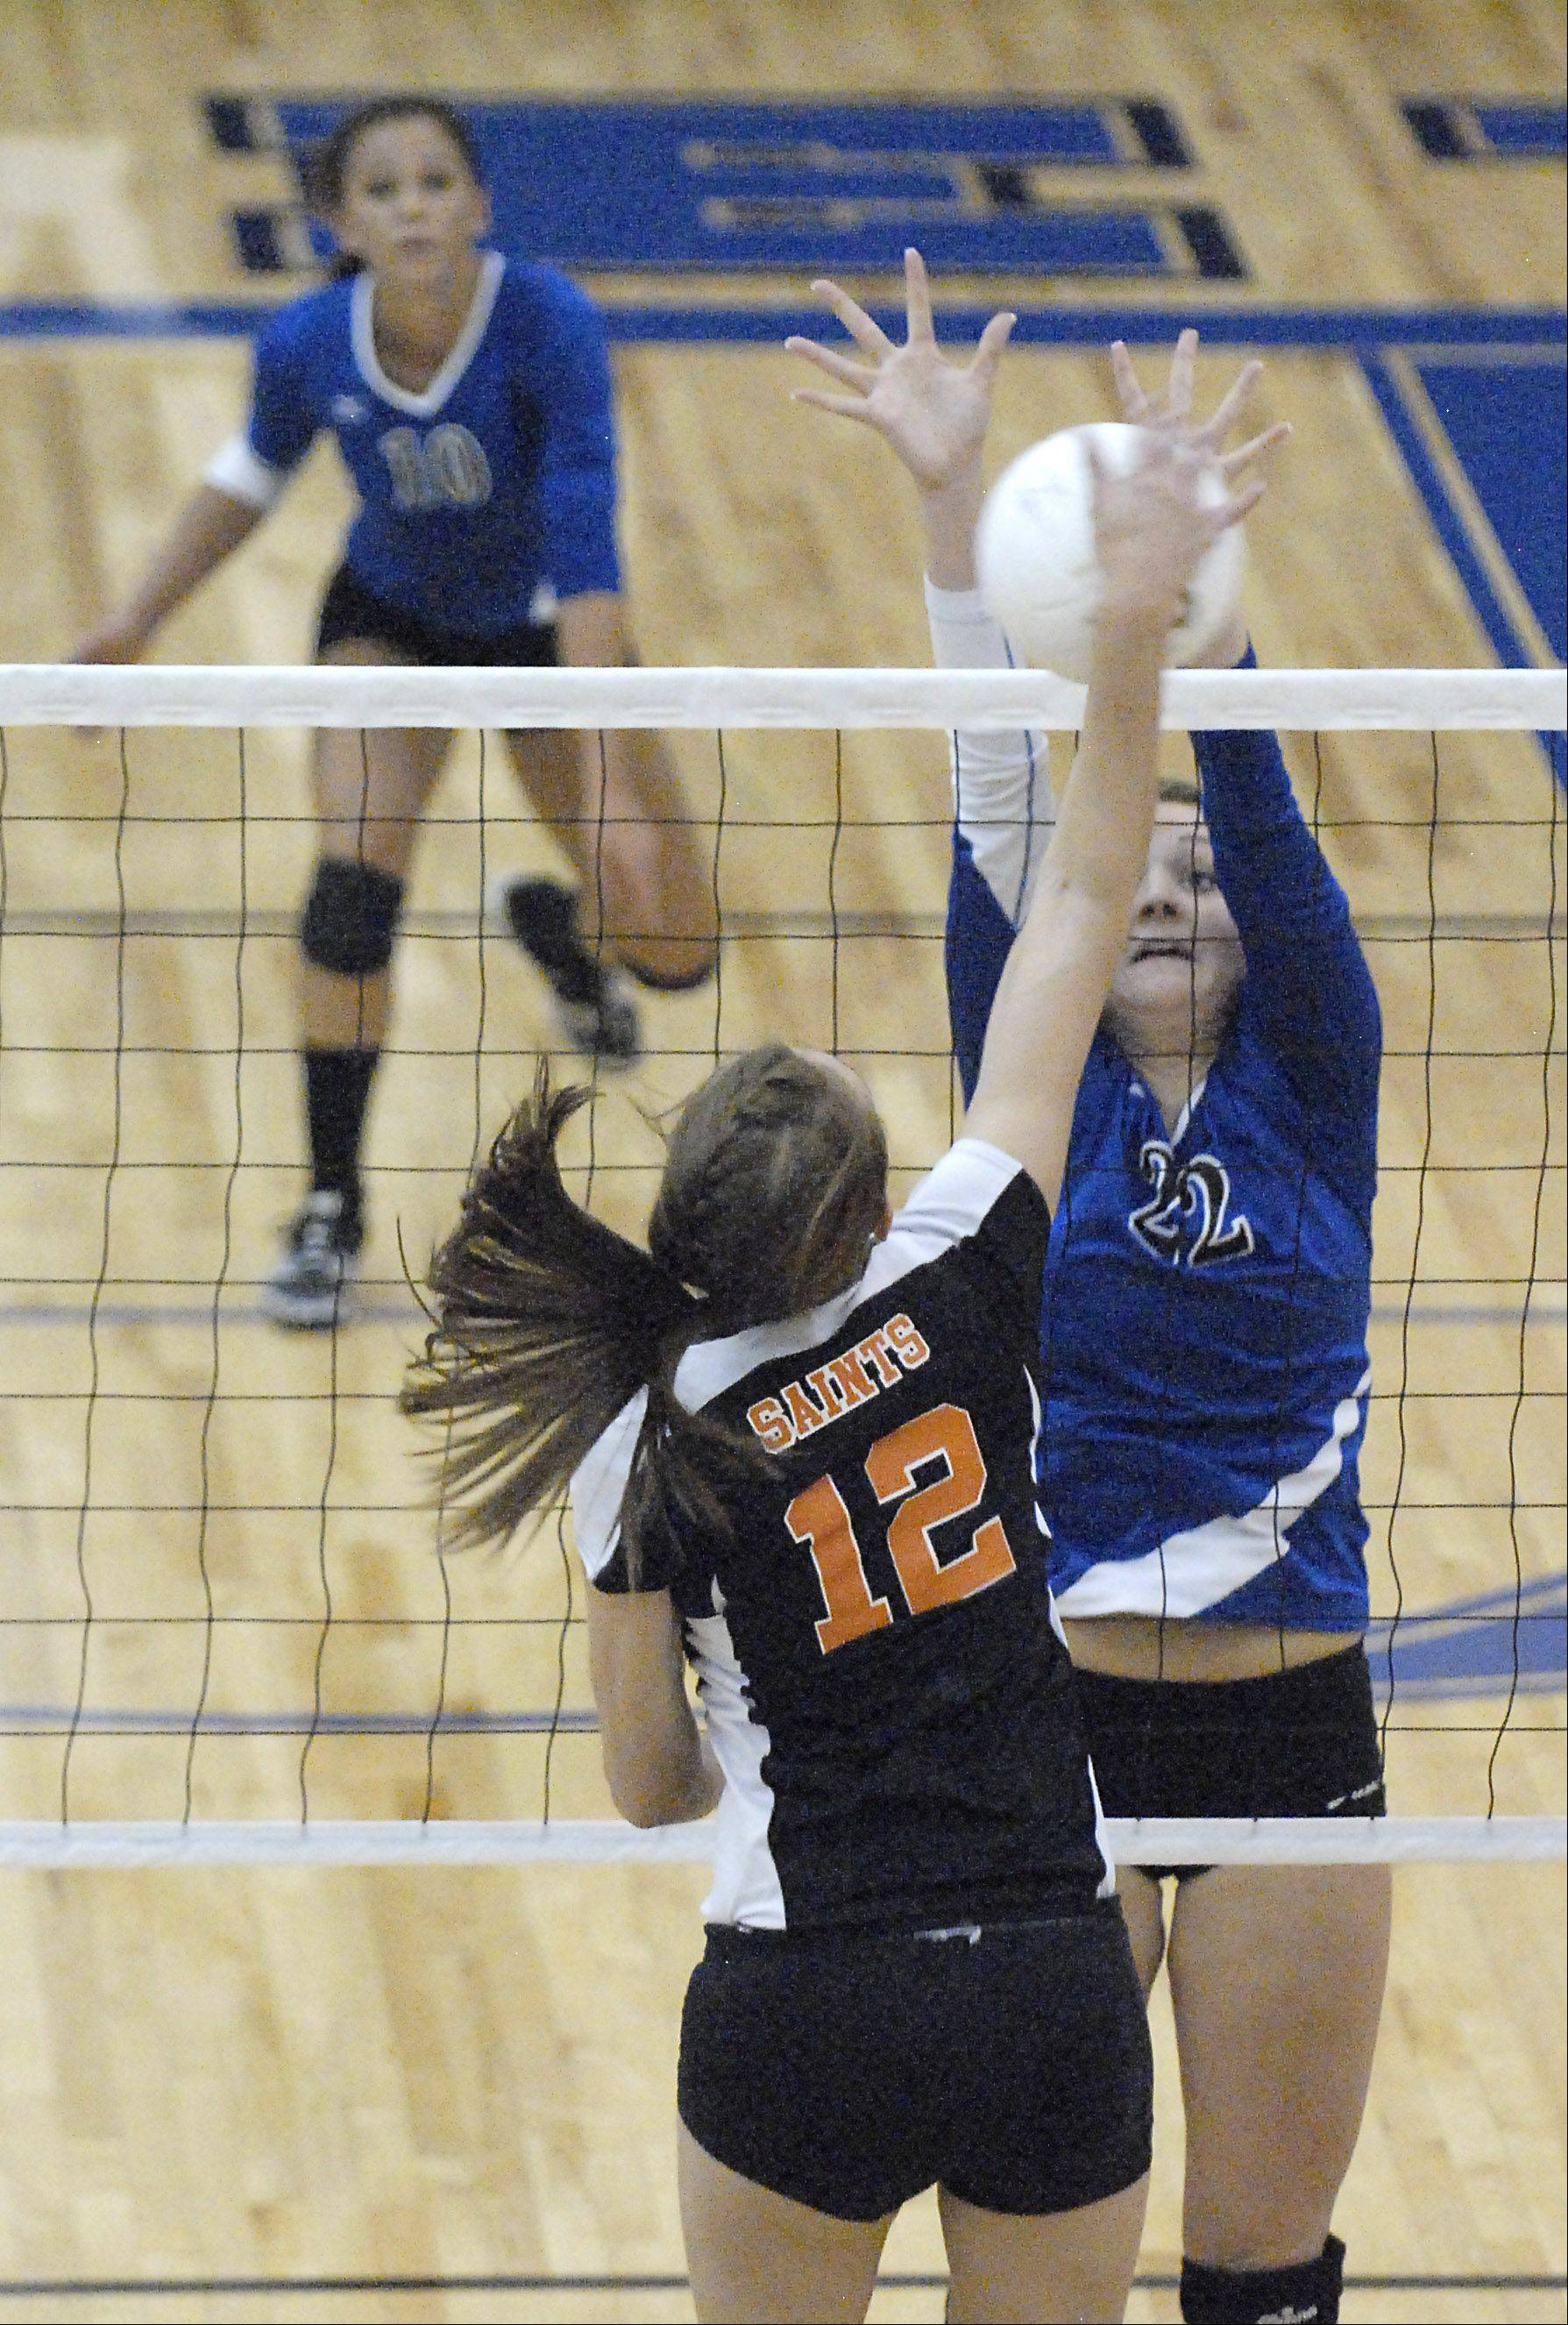 Laura Stoecker/lstoecker@dailyherald.com Geneva's Maddie Courter attempts to stop a spike by St. Charles East's Ashley Bullock in game one on Tuesday, October 16.